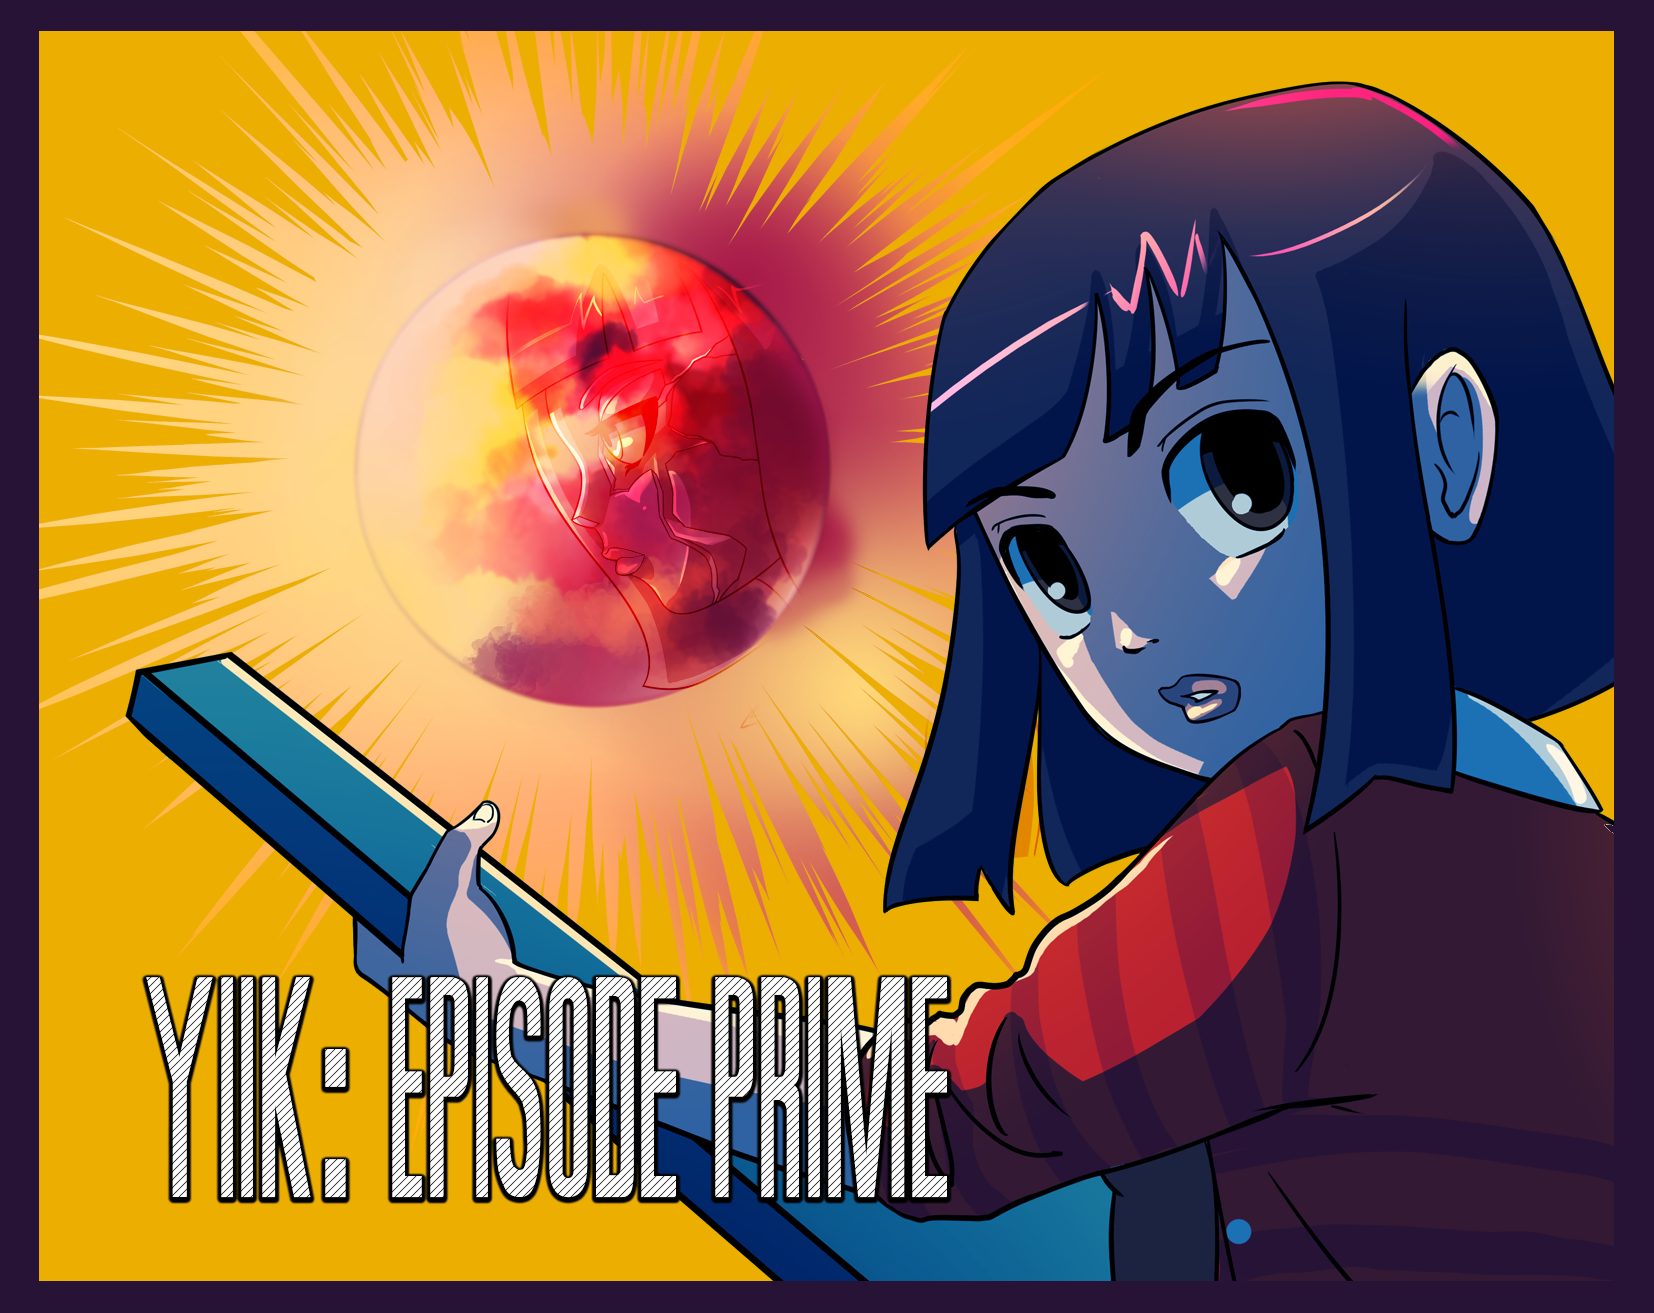 """YIIK: Episode Prime """"The MixTape Phantom and the Haunting of the Southern Cave."""""""